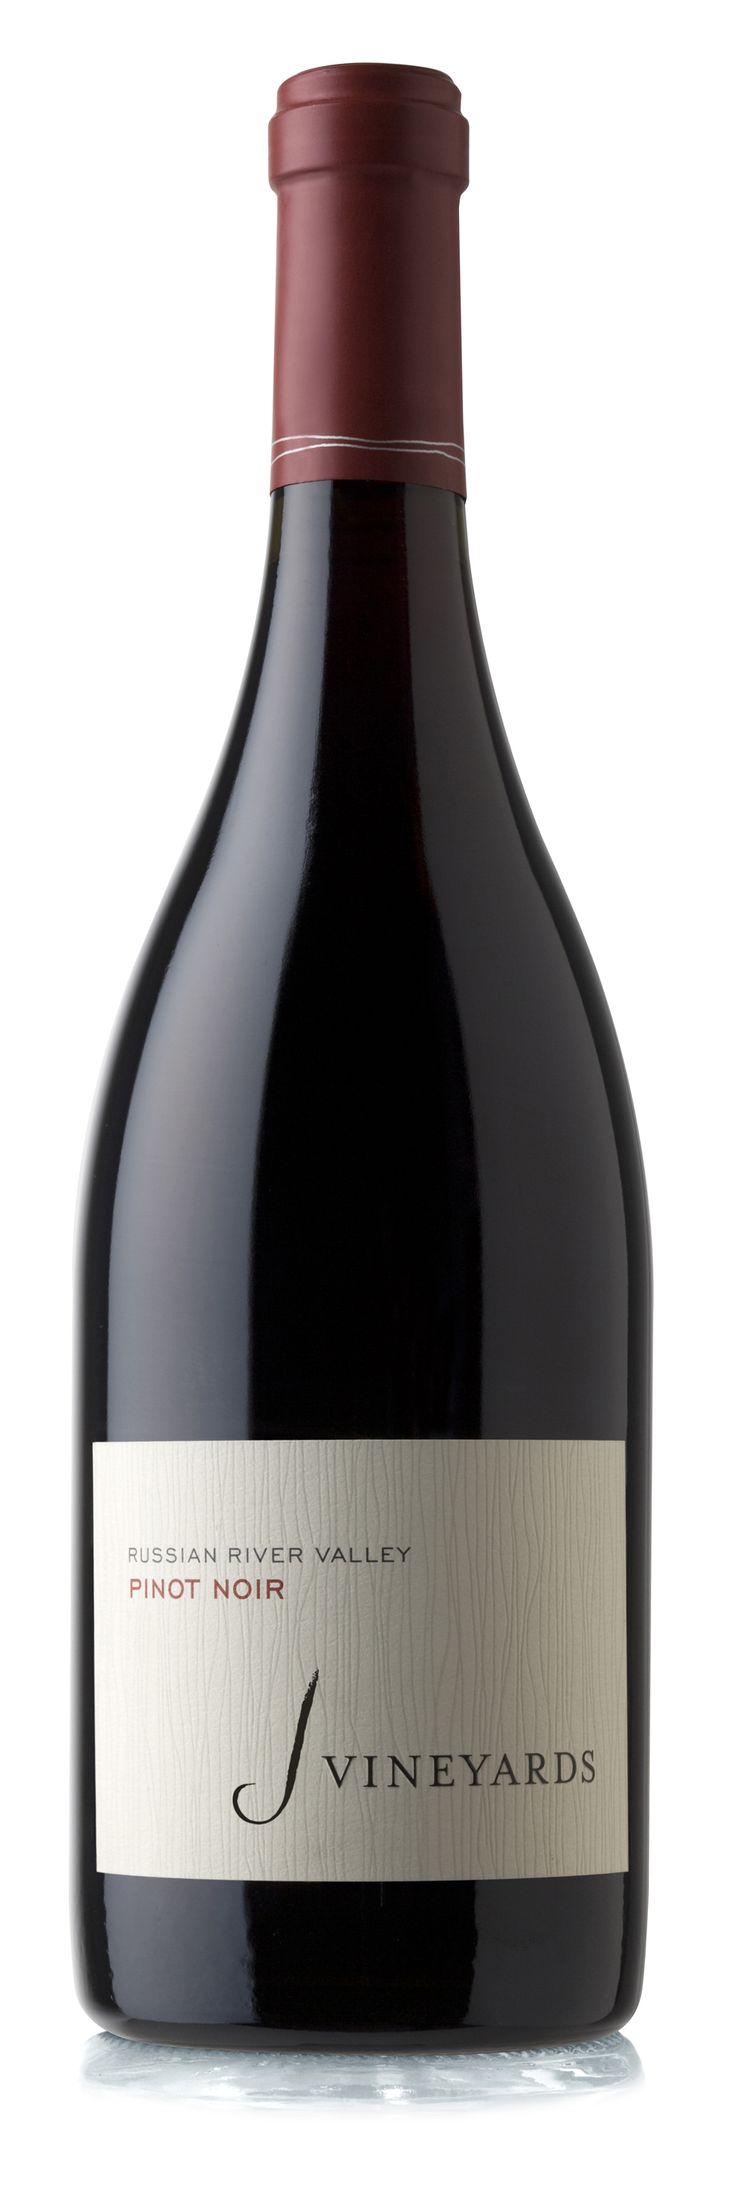 J Vineyards Pinot Noir, lush ruby-red wine that vibrantly showcases its cool-climate Russian River Valley pedigree...Aromas of rich chocolate and wild blackberry